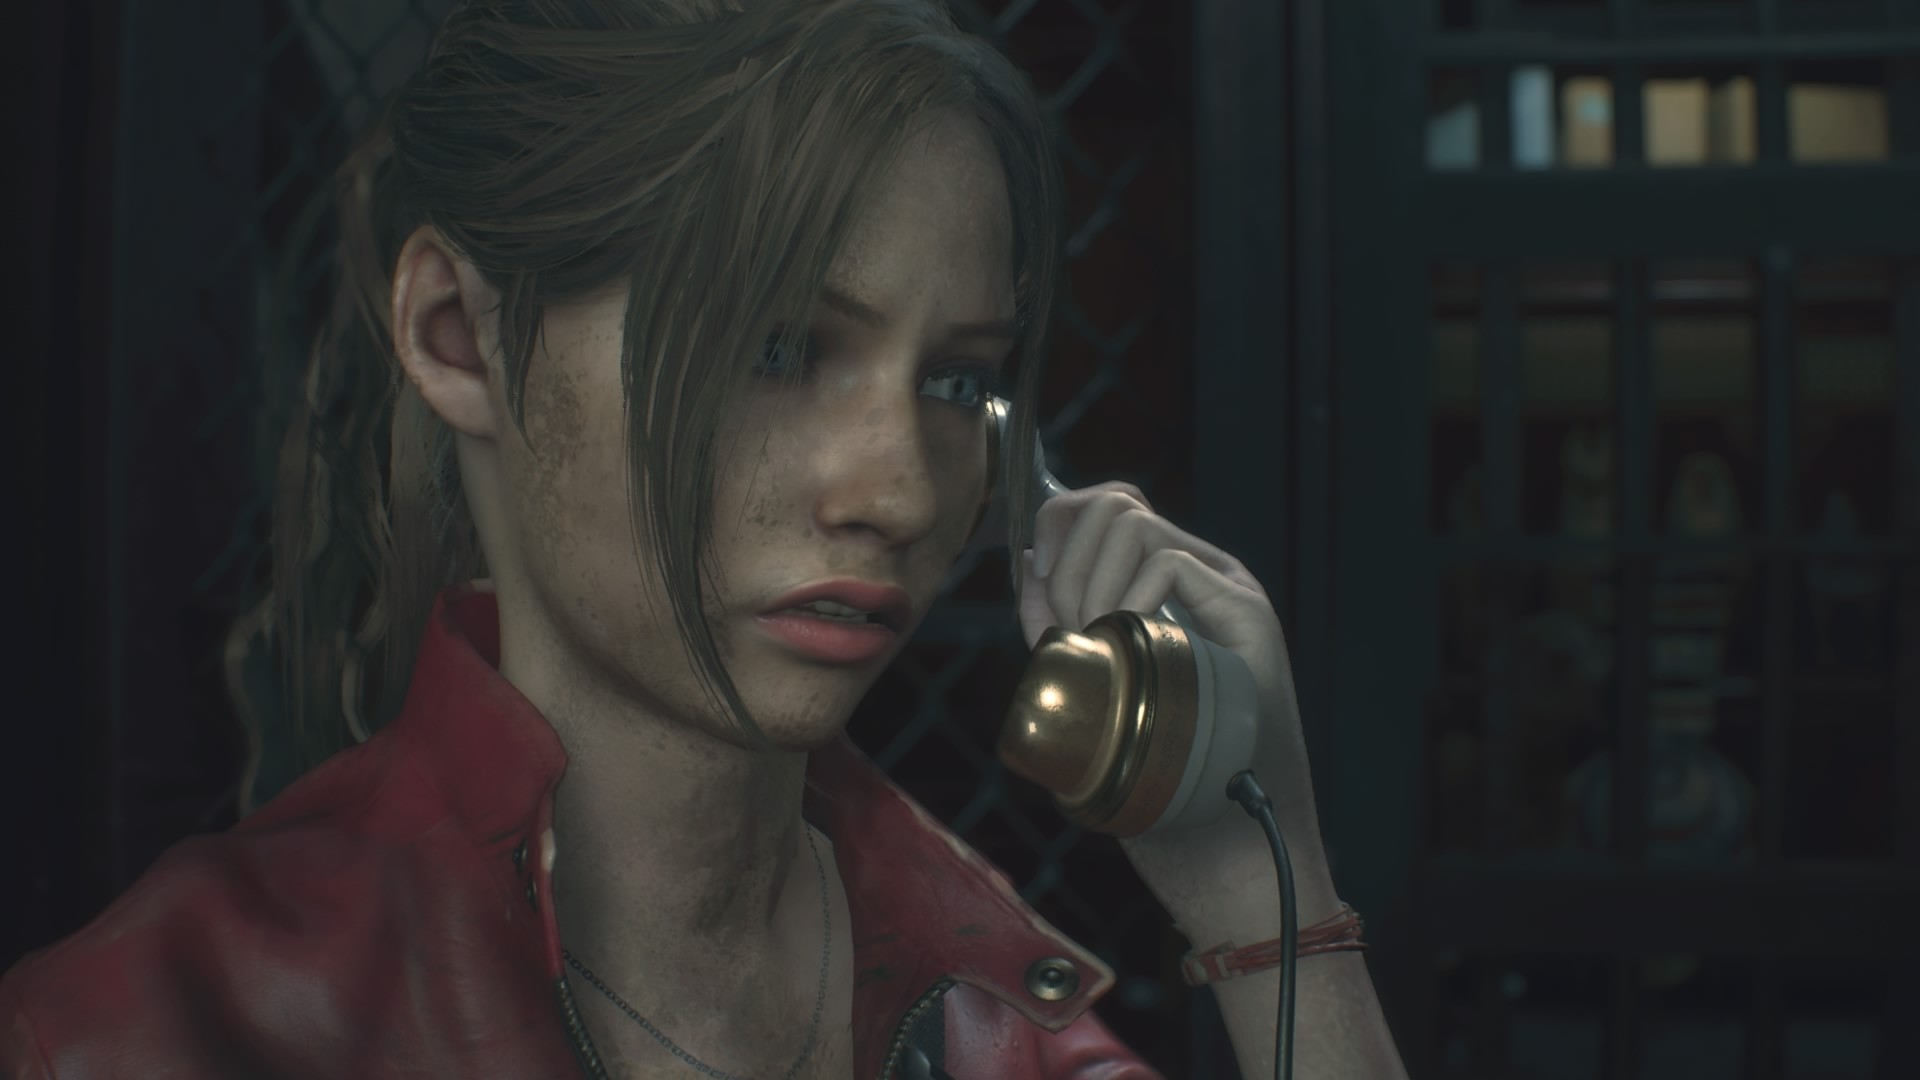 Res: 1920x1080, Resident Evil 2, Claire Redfield, In-game